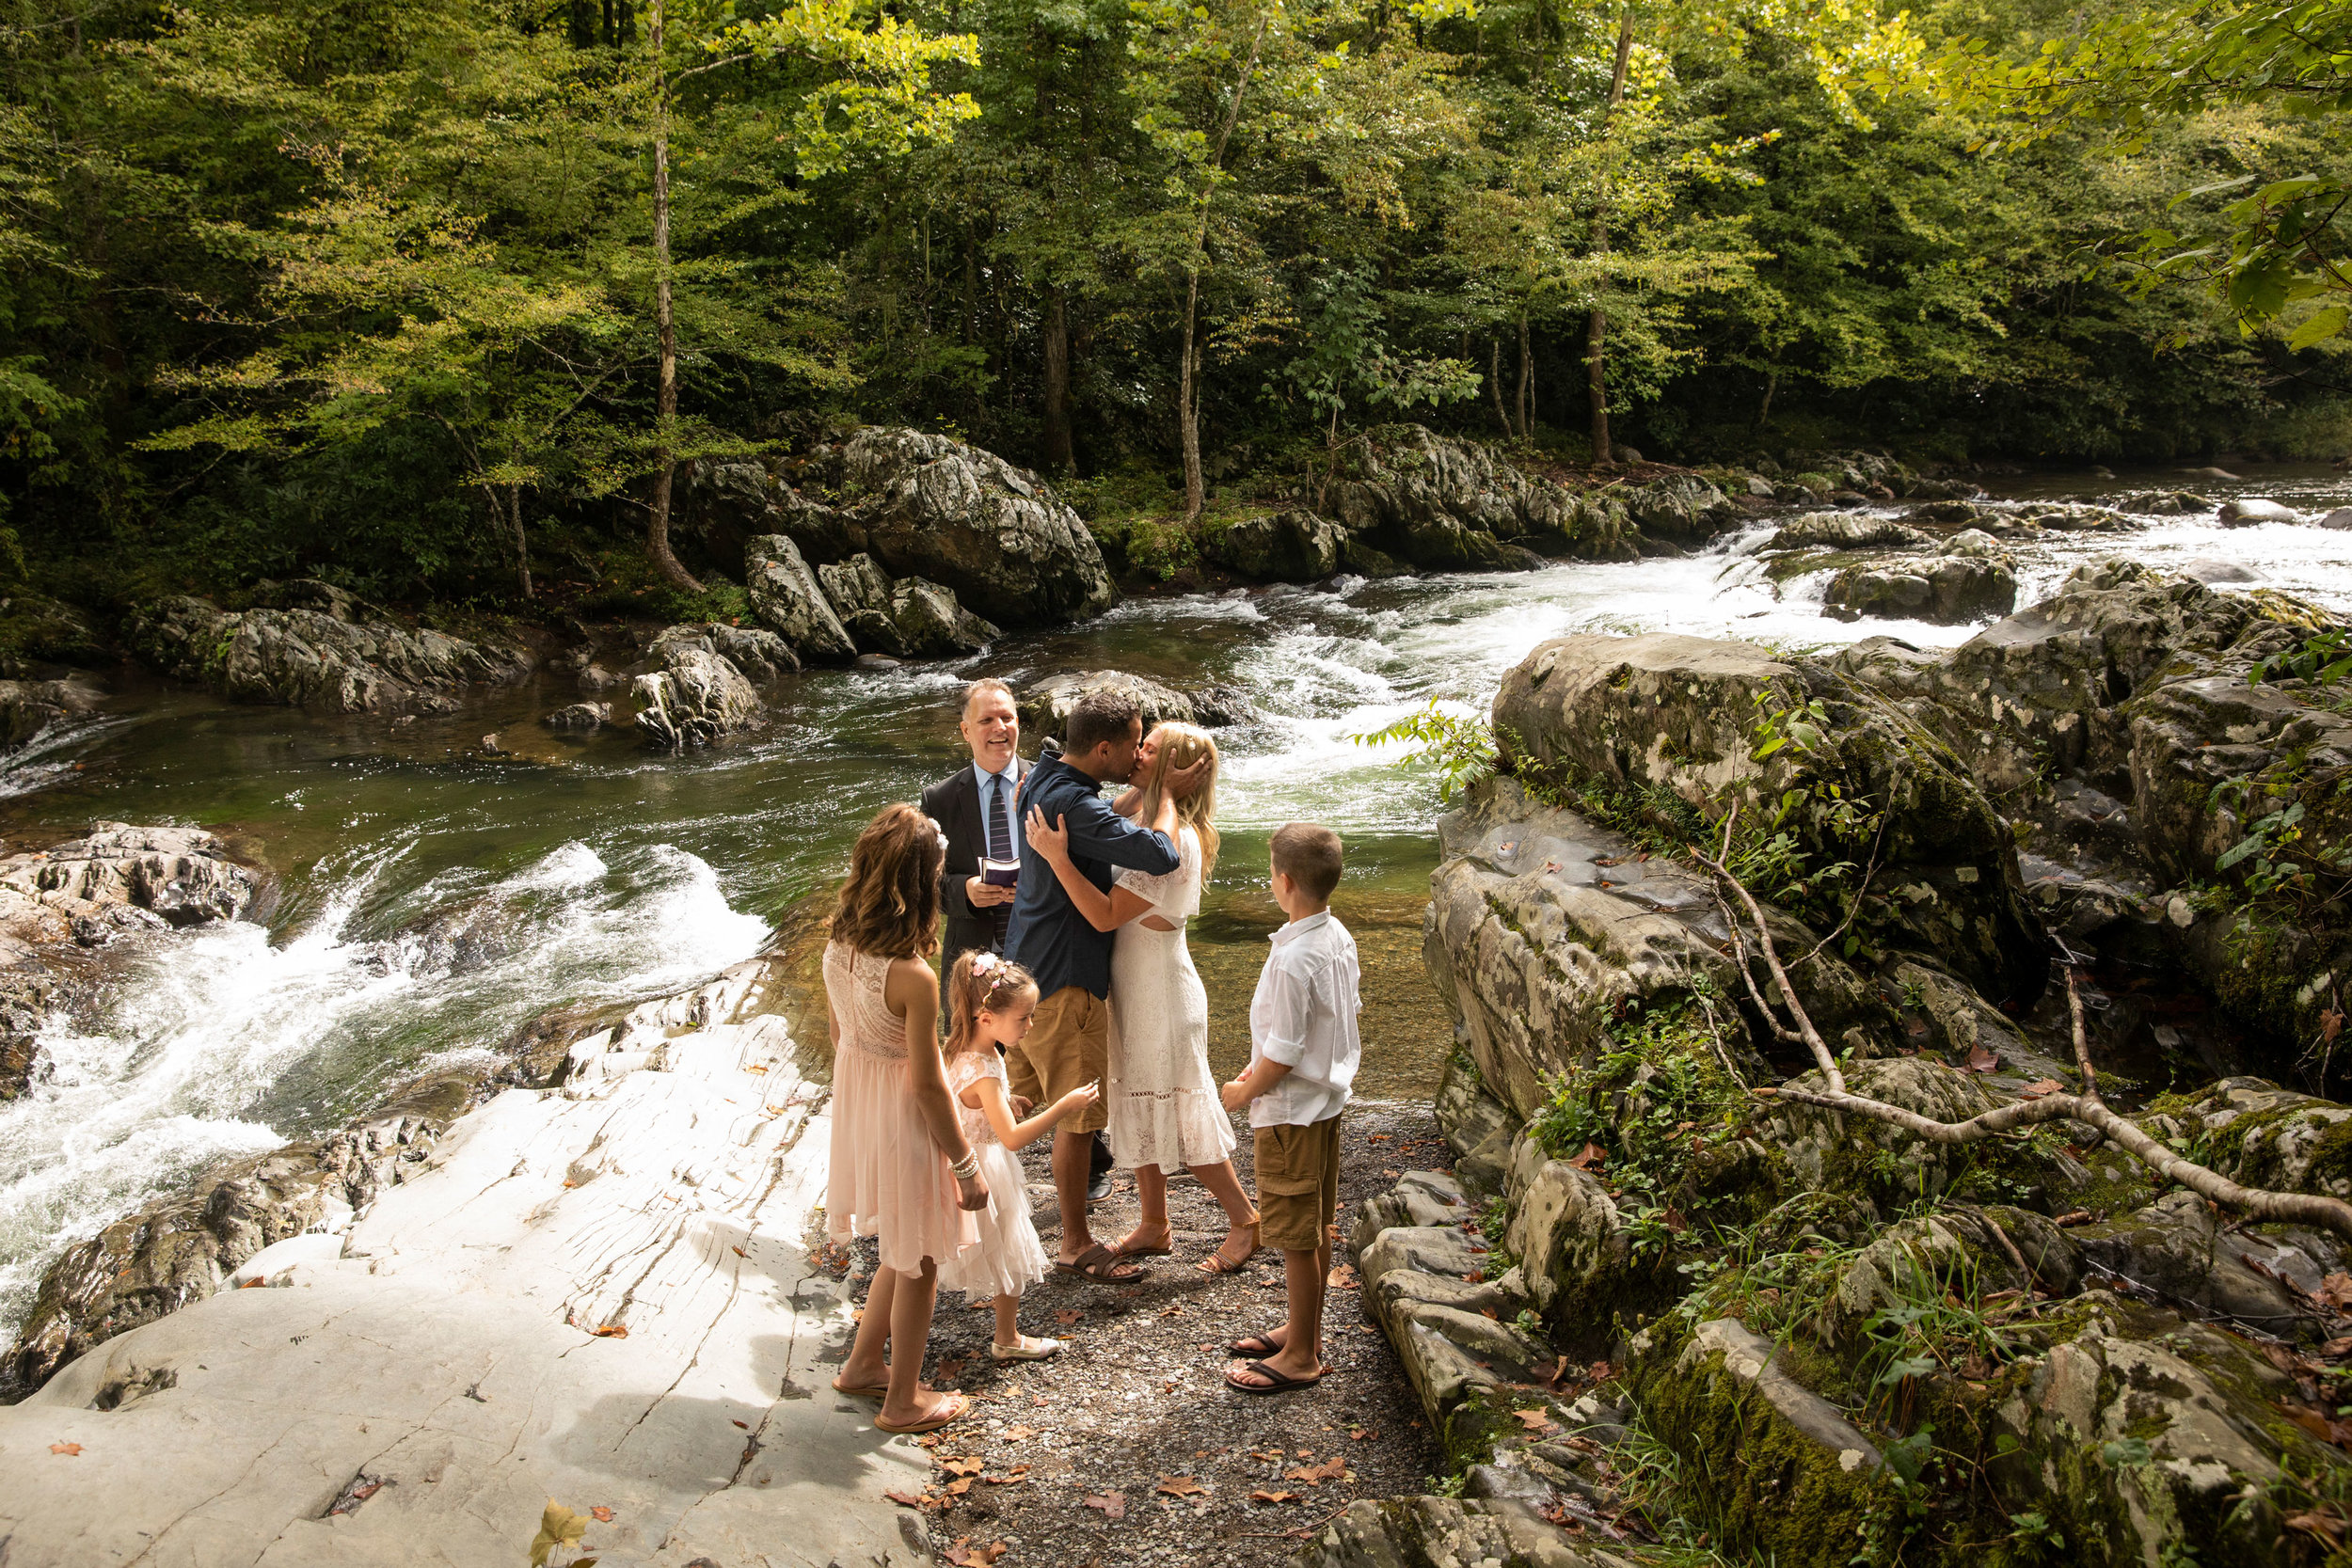 gatlinburg-wedding-officiant-and-photographer-service-for-elopement.jpg